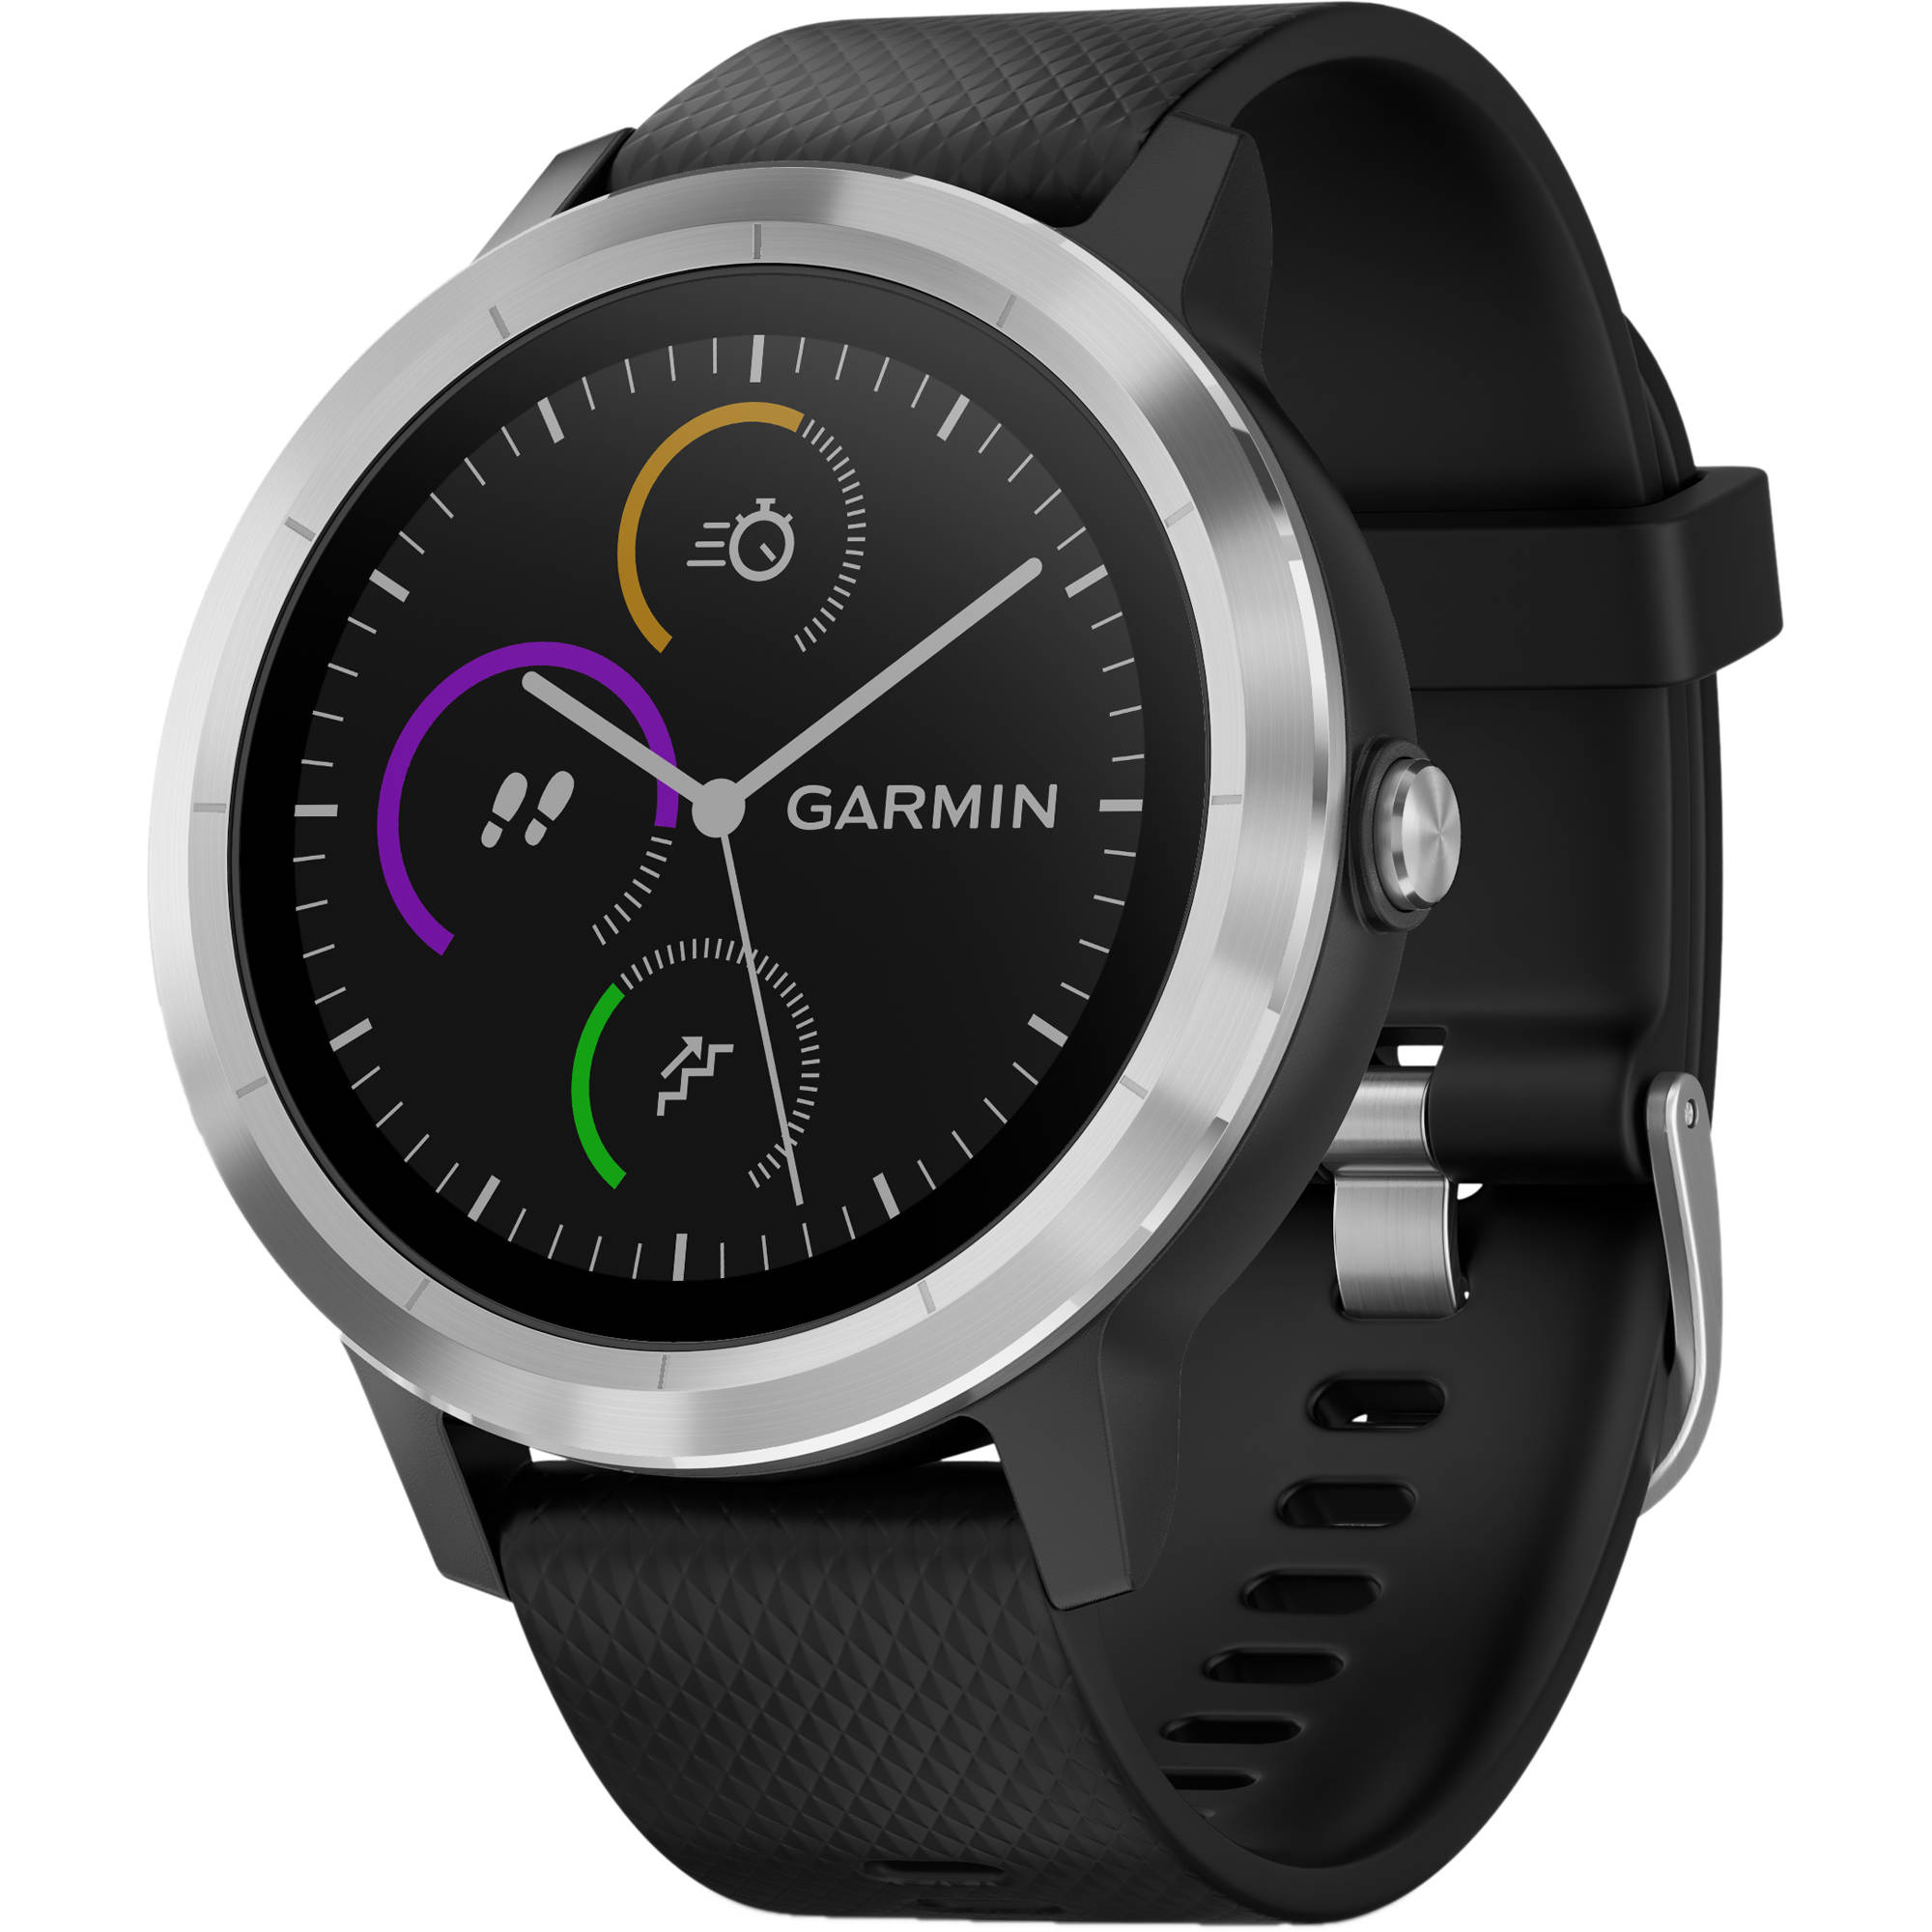 Garmin Vívoactive 3 - Stainless Steel - Smart Watch With Band Black